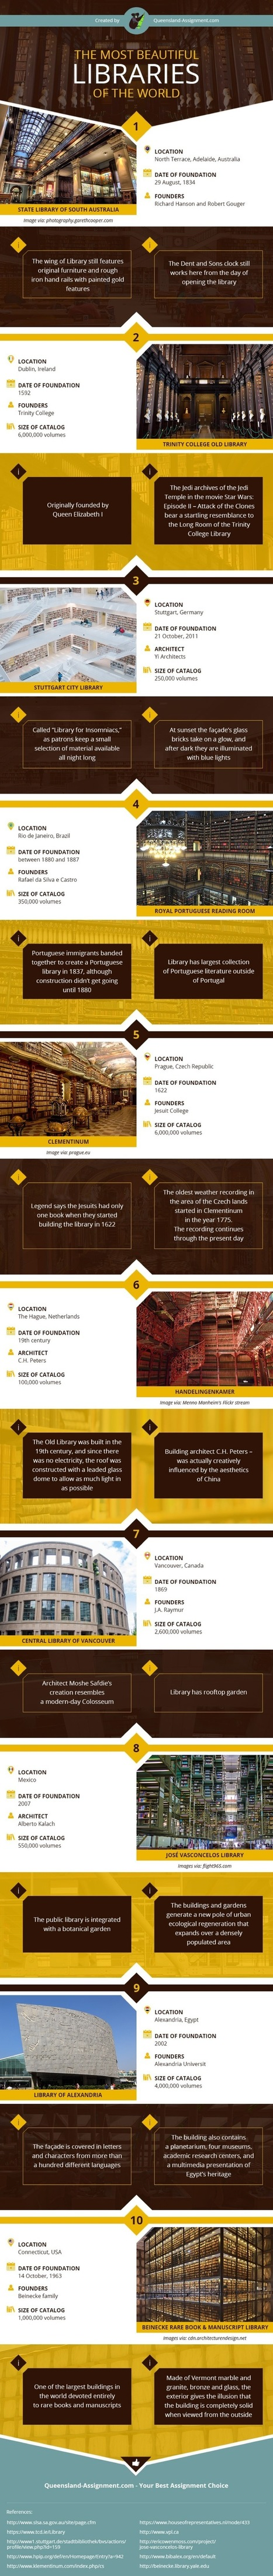 The most beautiful libraries in the world (infographic) | Librarysoul | Scoop.it